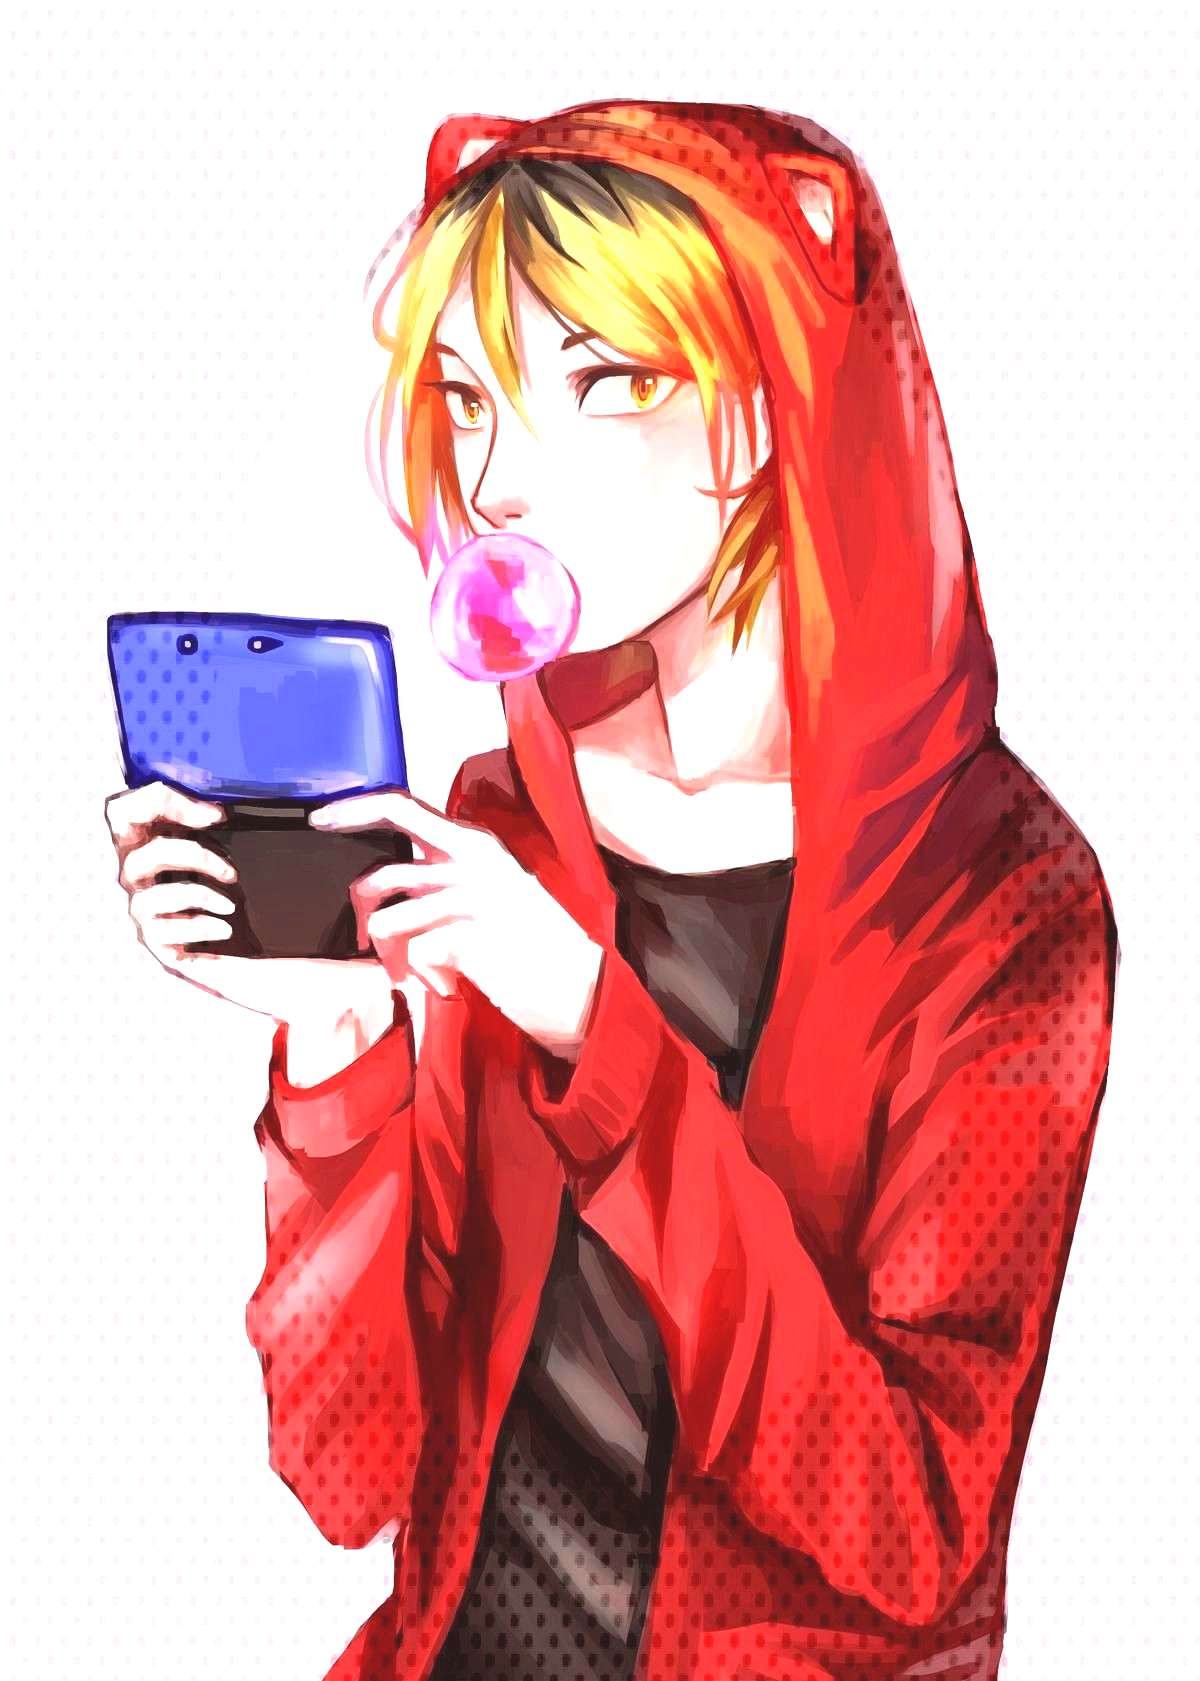 Kozume-whyisntnekoatsumeonthe3ds-Kenma -You can find Haikyuu and more on our website.Kozume-whyisnt